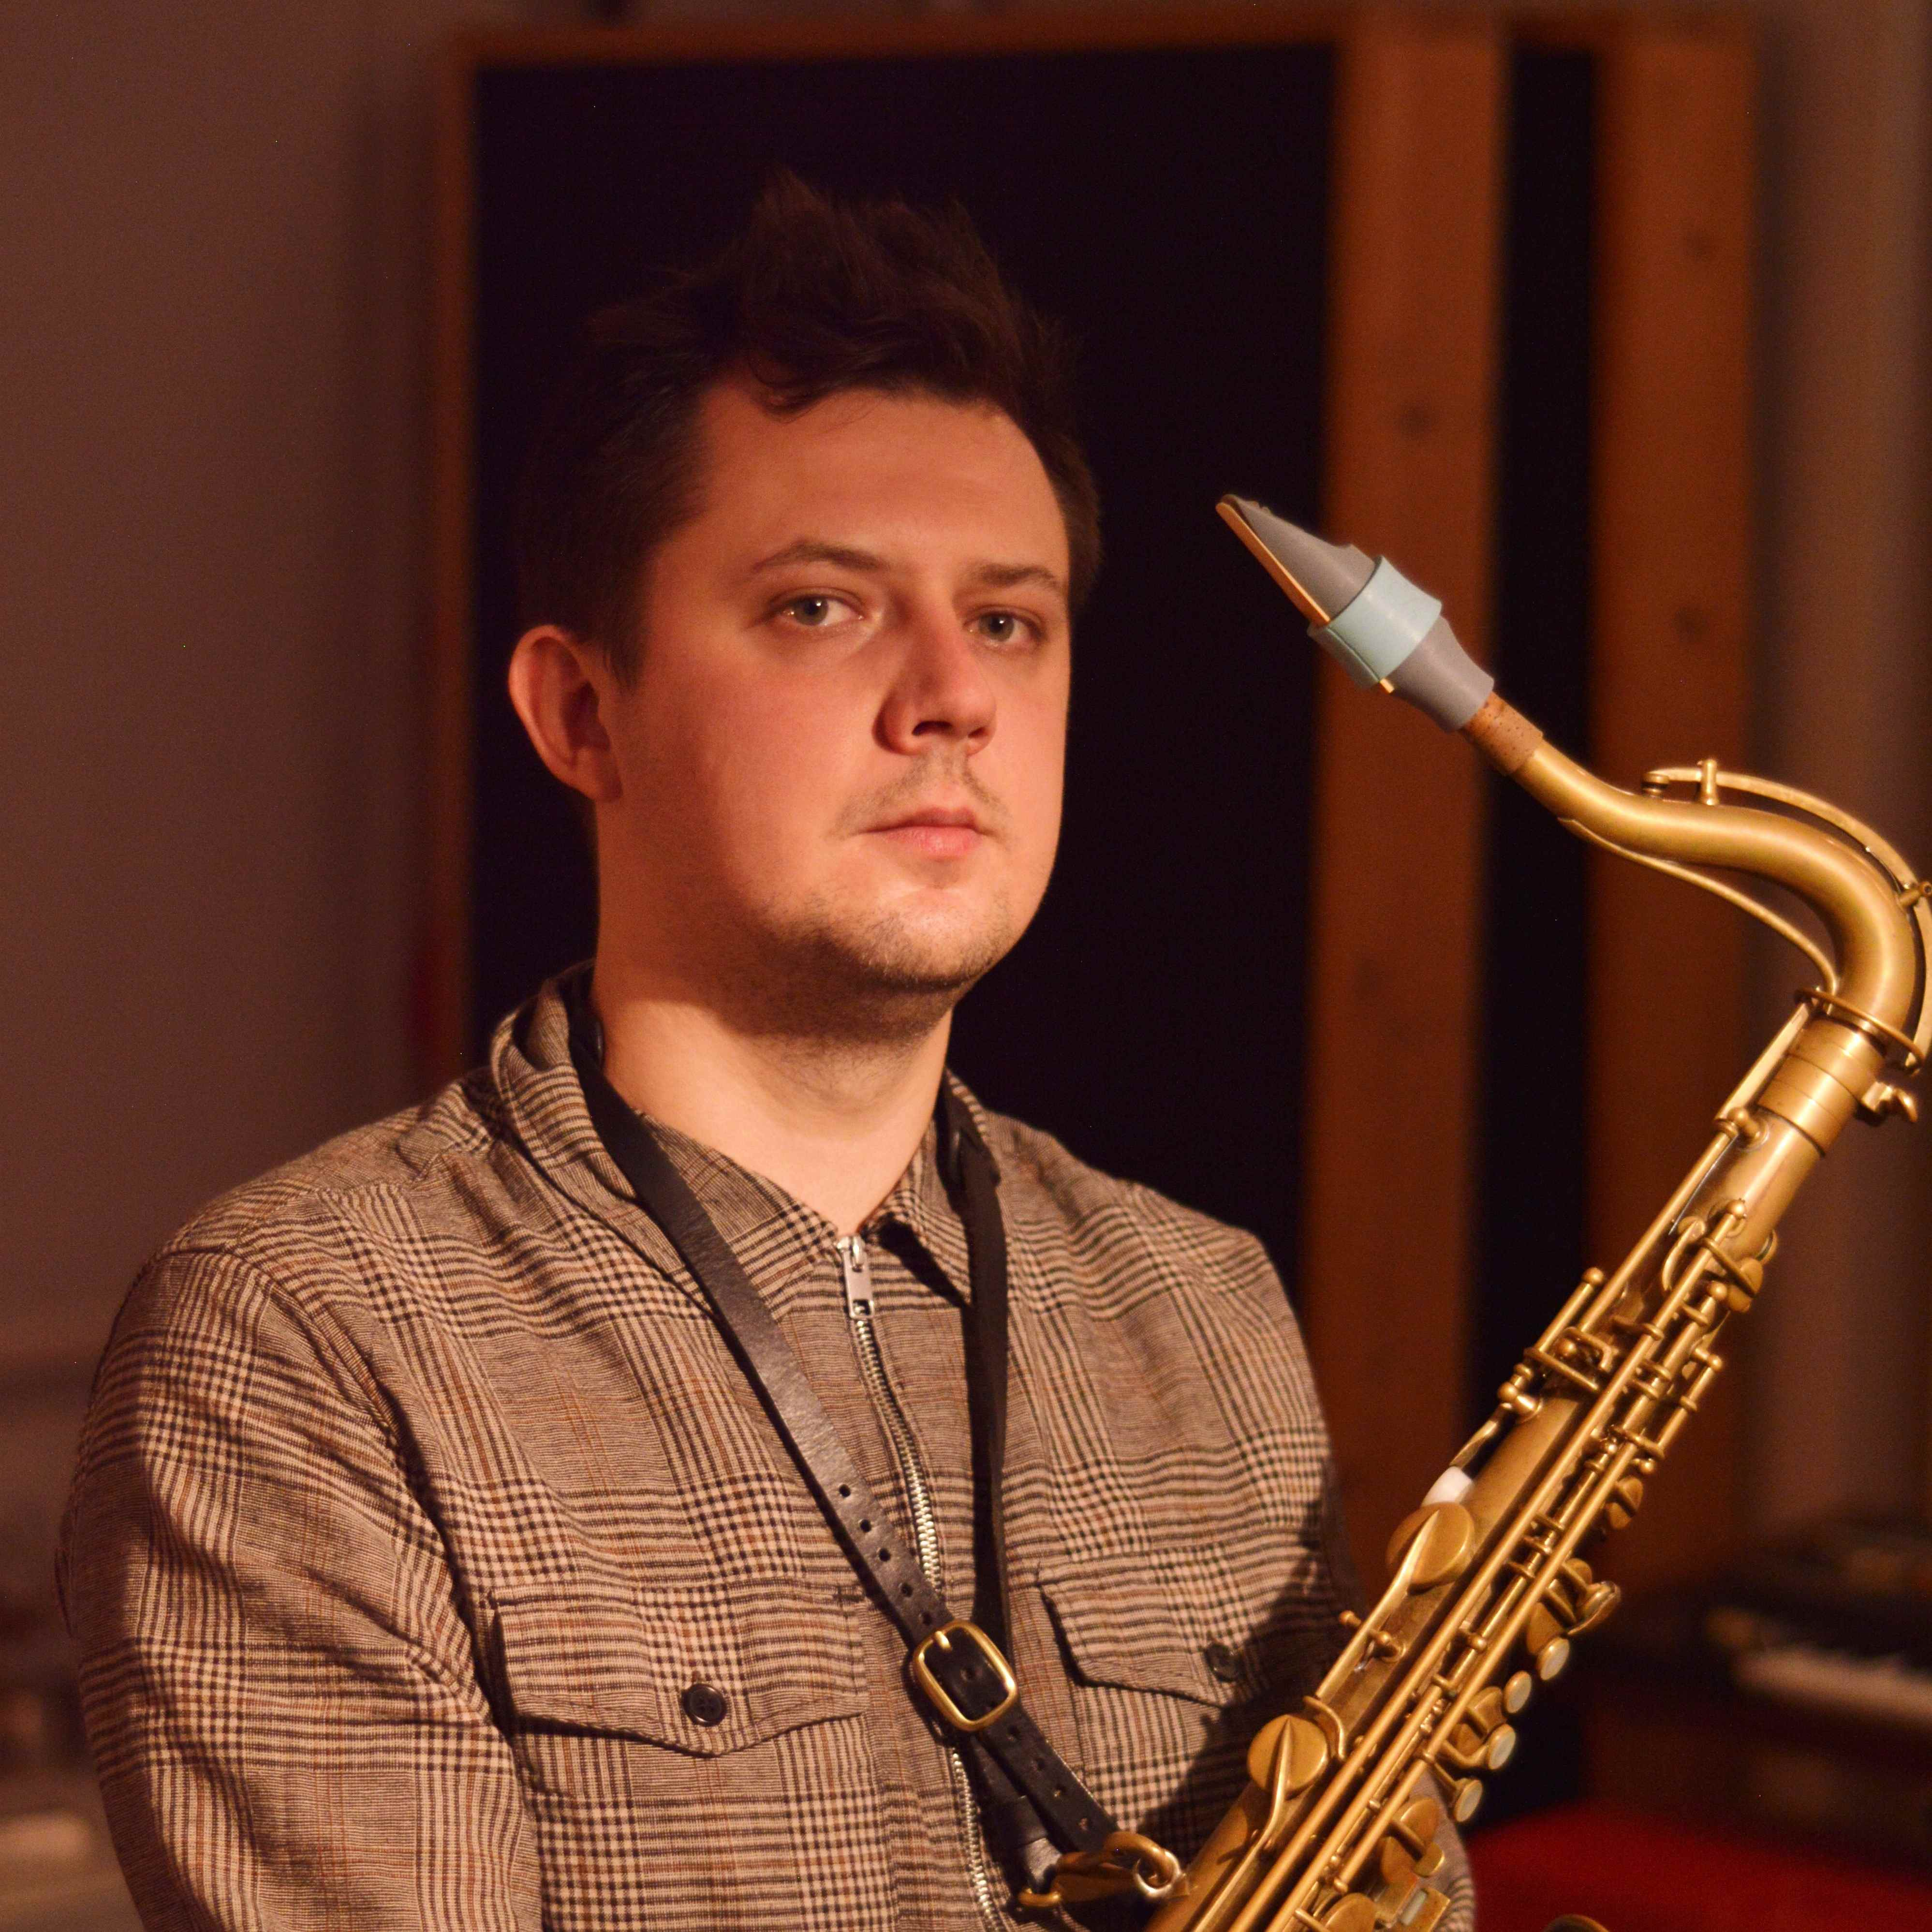 Oleksandr Kolosii plays a Syos mouthpiece for tenor saxophone